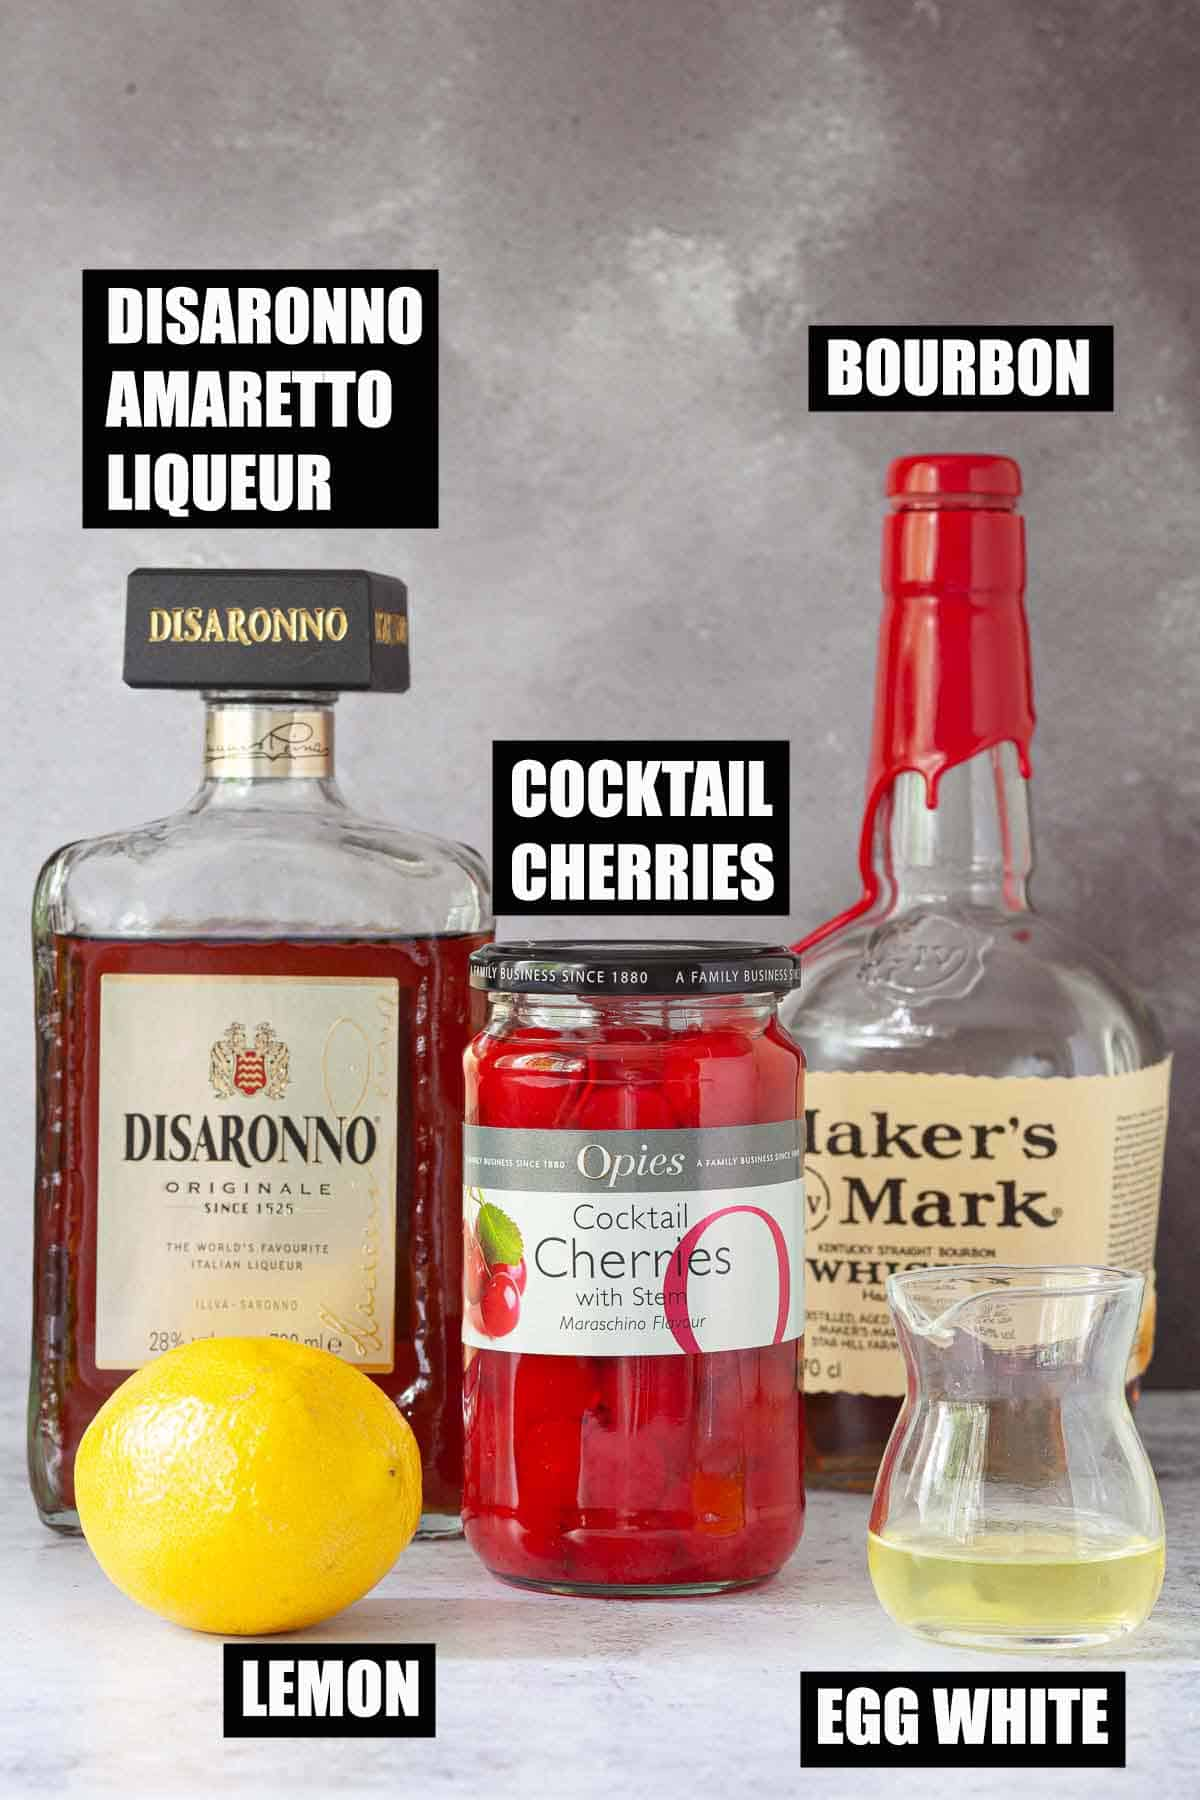 Ingredients for an Amaretto drink with text overlay